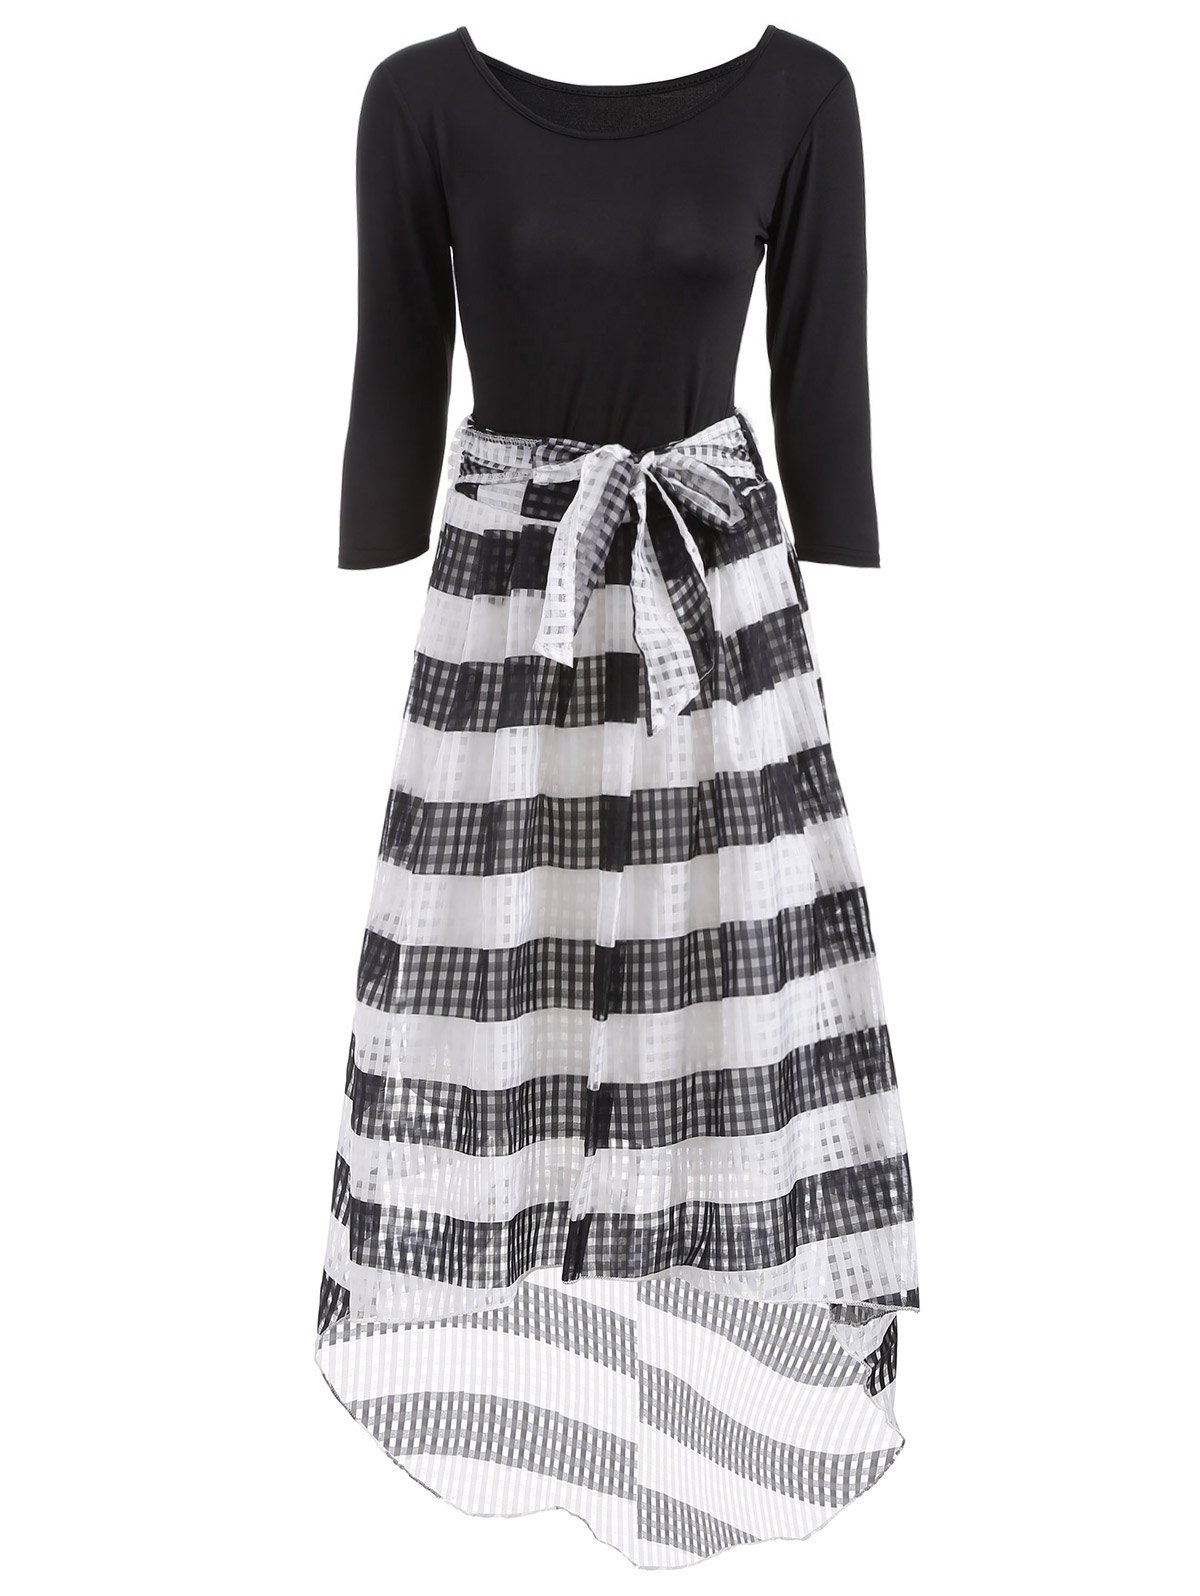 Scoop Neck T-Shirt With Striped Mesh Skirt Twinset - WHITE/BLACK L